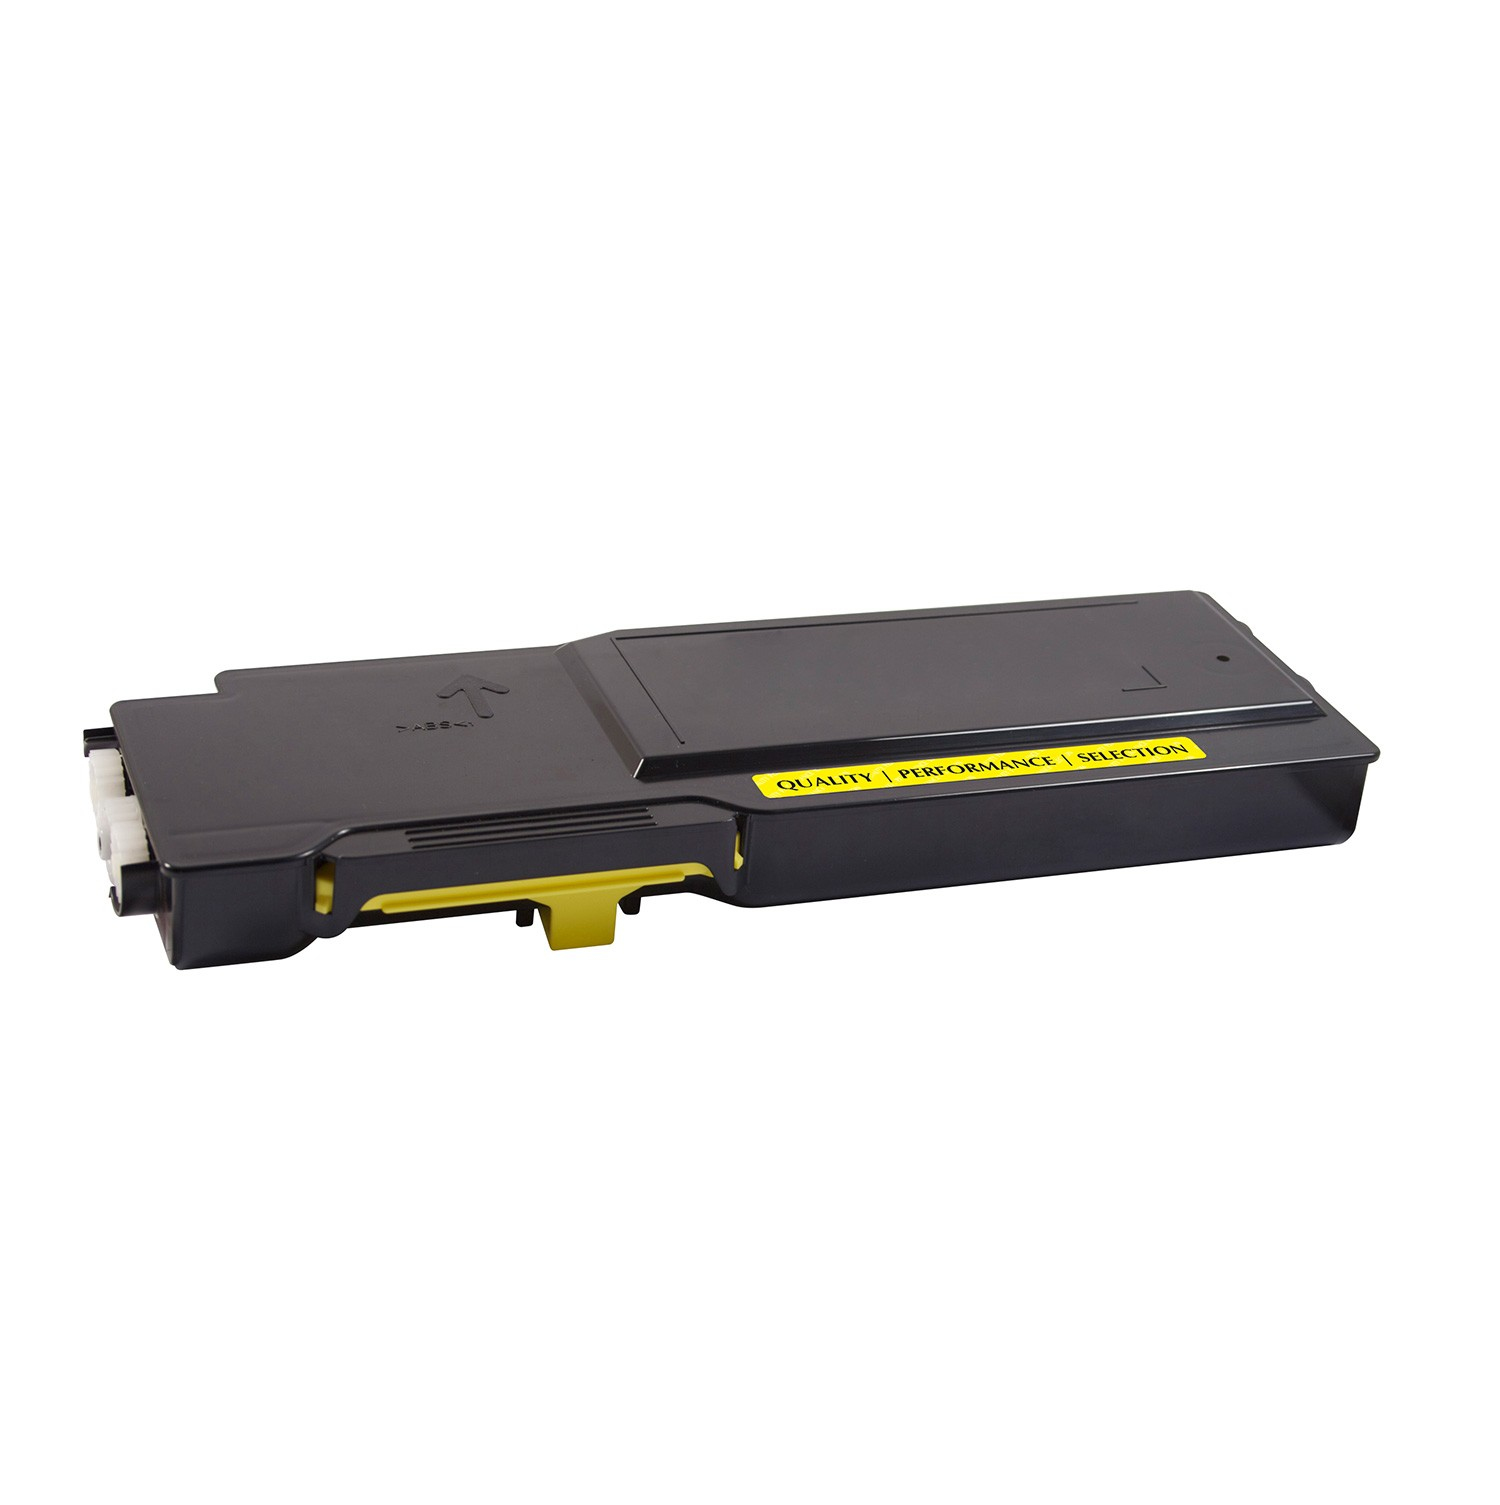 YELLOW TONER 4000PG YIELD REPLACES DELL 2K1VC